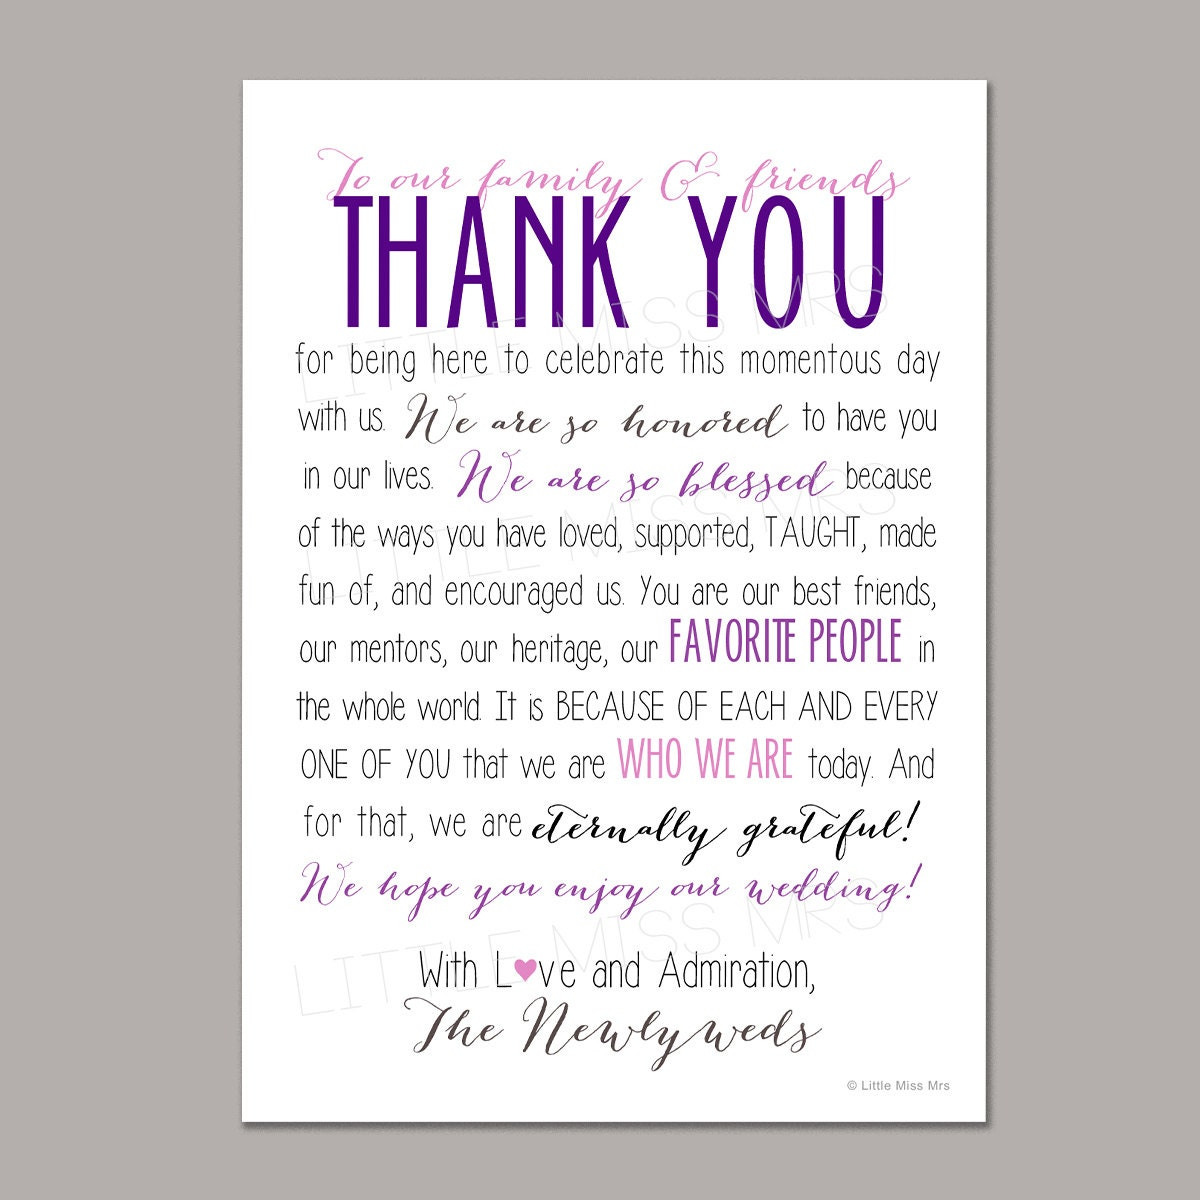 Thank You Notes For Wedding Anniversary Gifts : thank you notes for wedding printable wedding reception thank you note ...